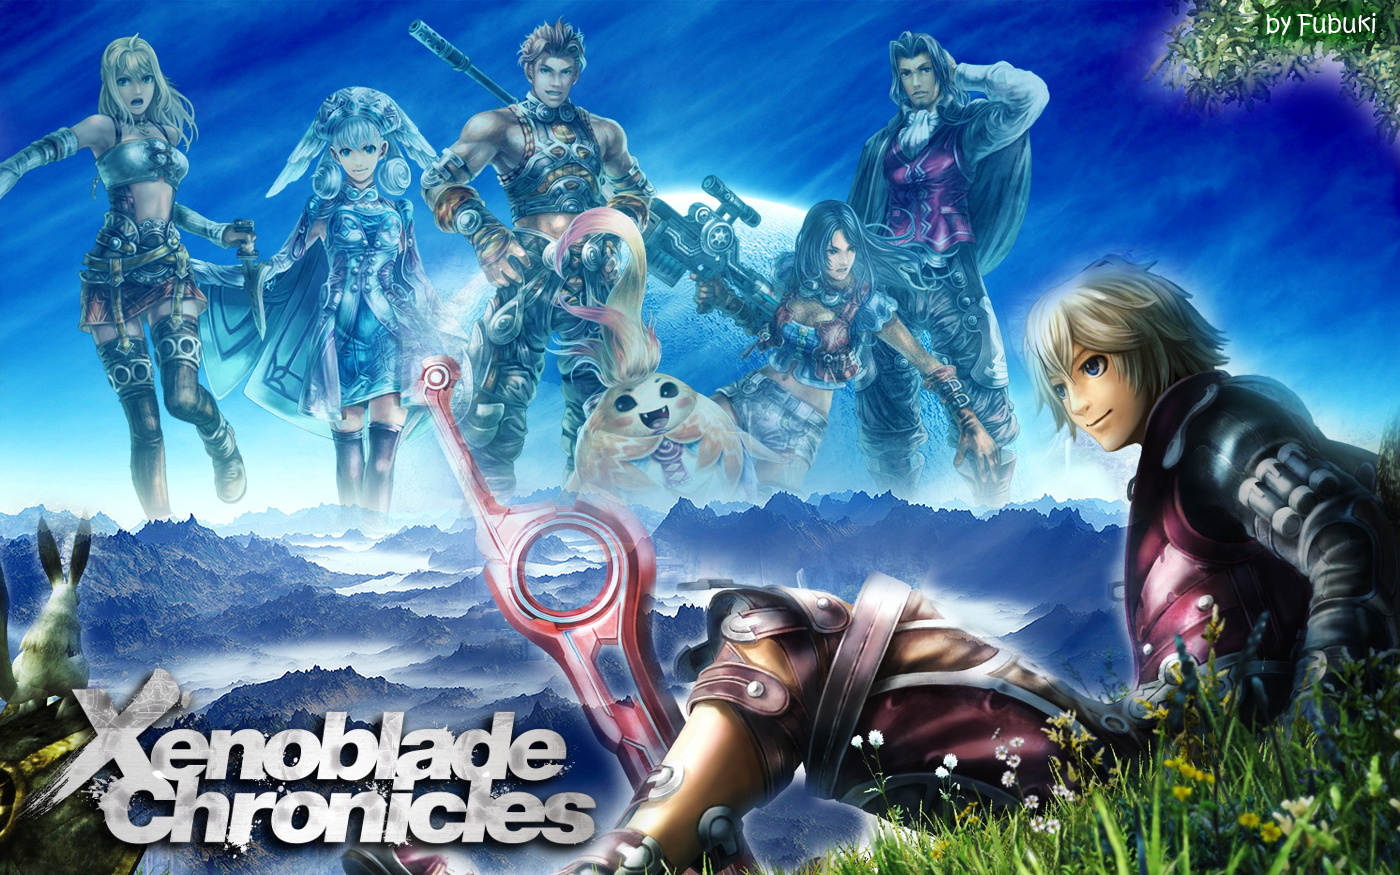 Wallpaper Xenoblade Chronicles By Legendqueen01 On Deviantart